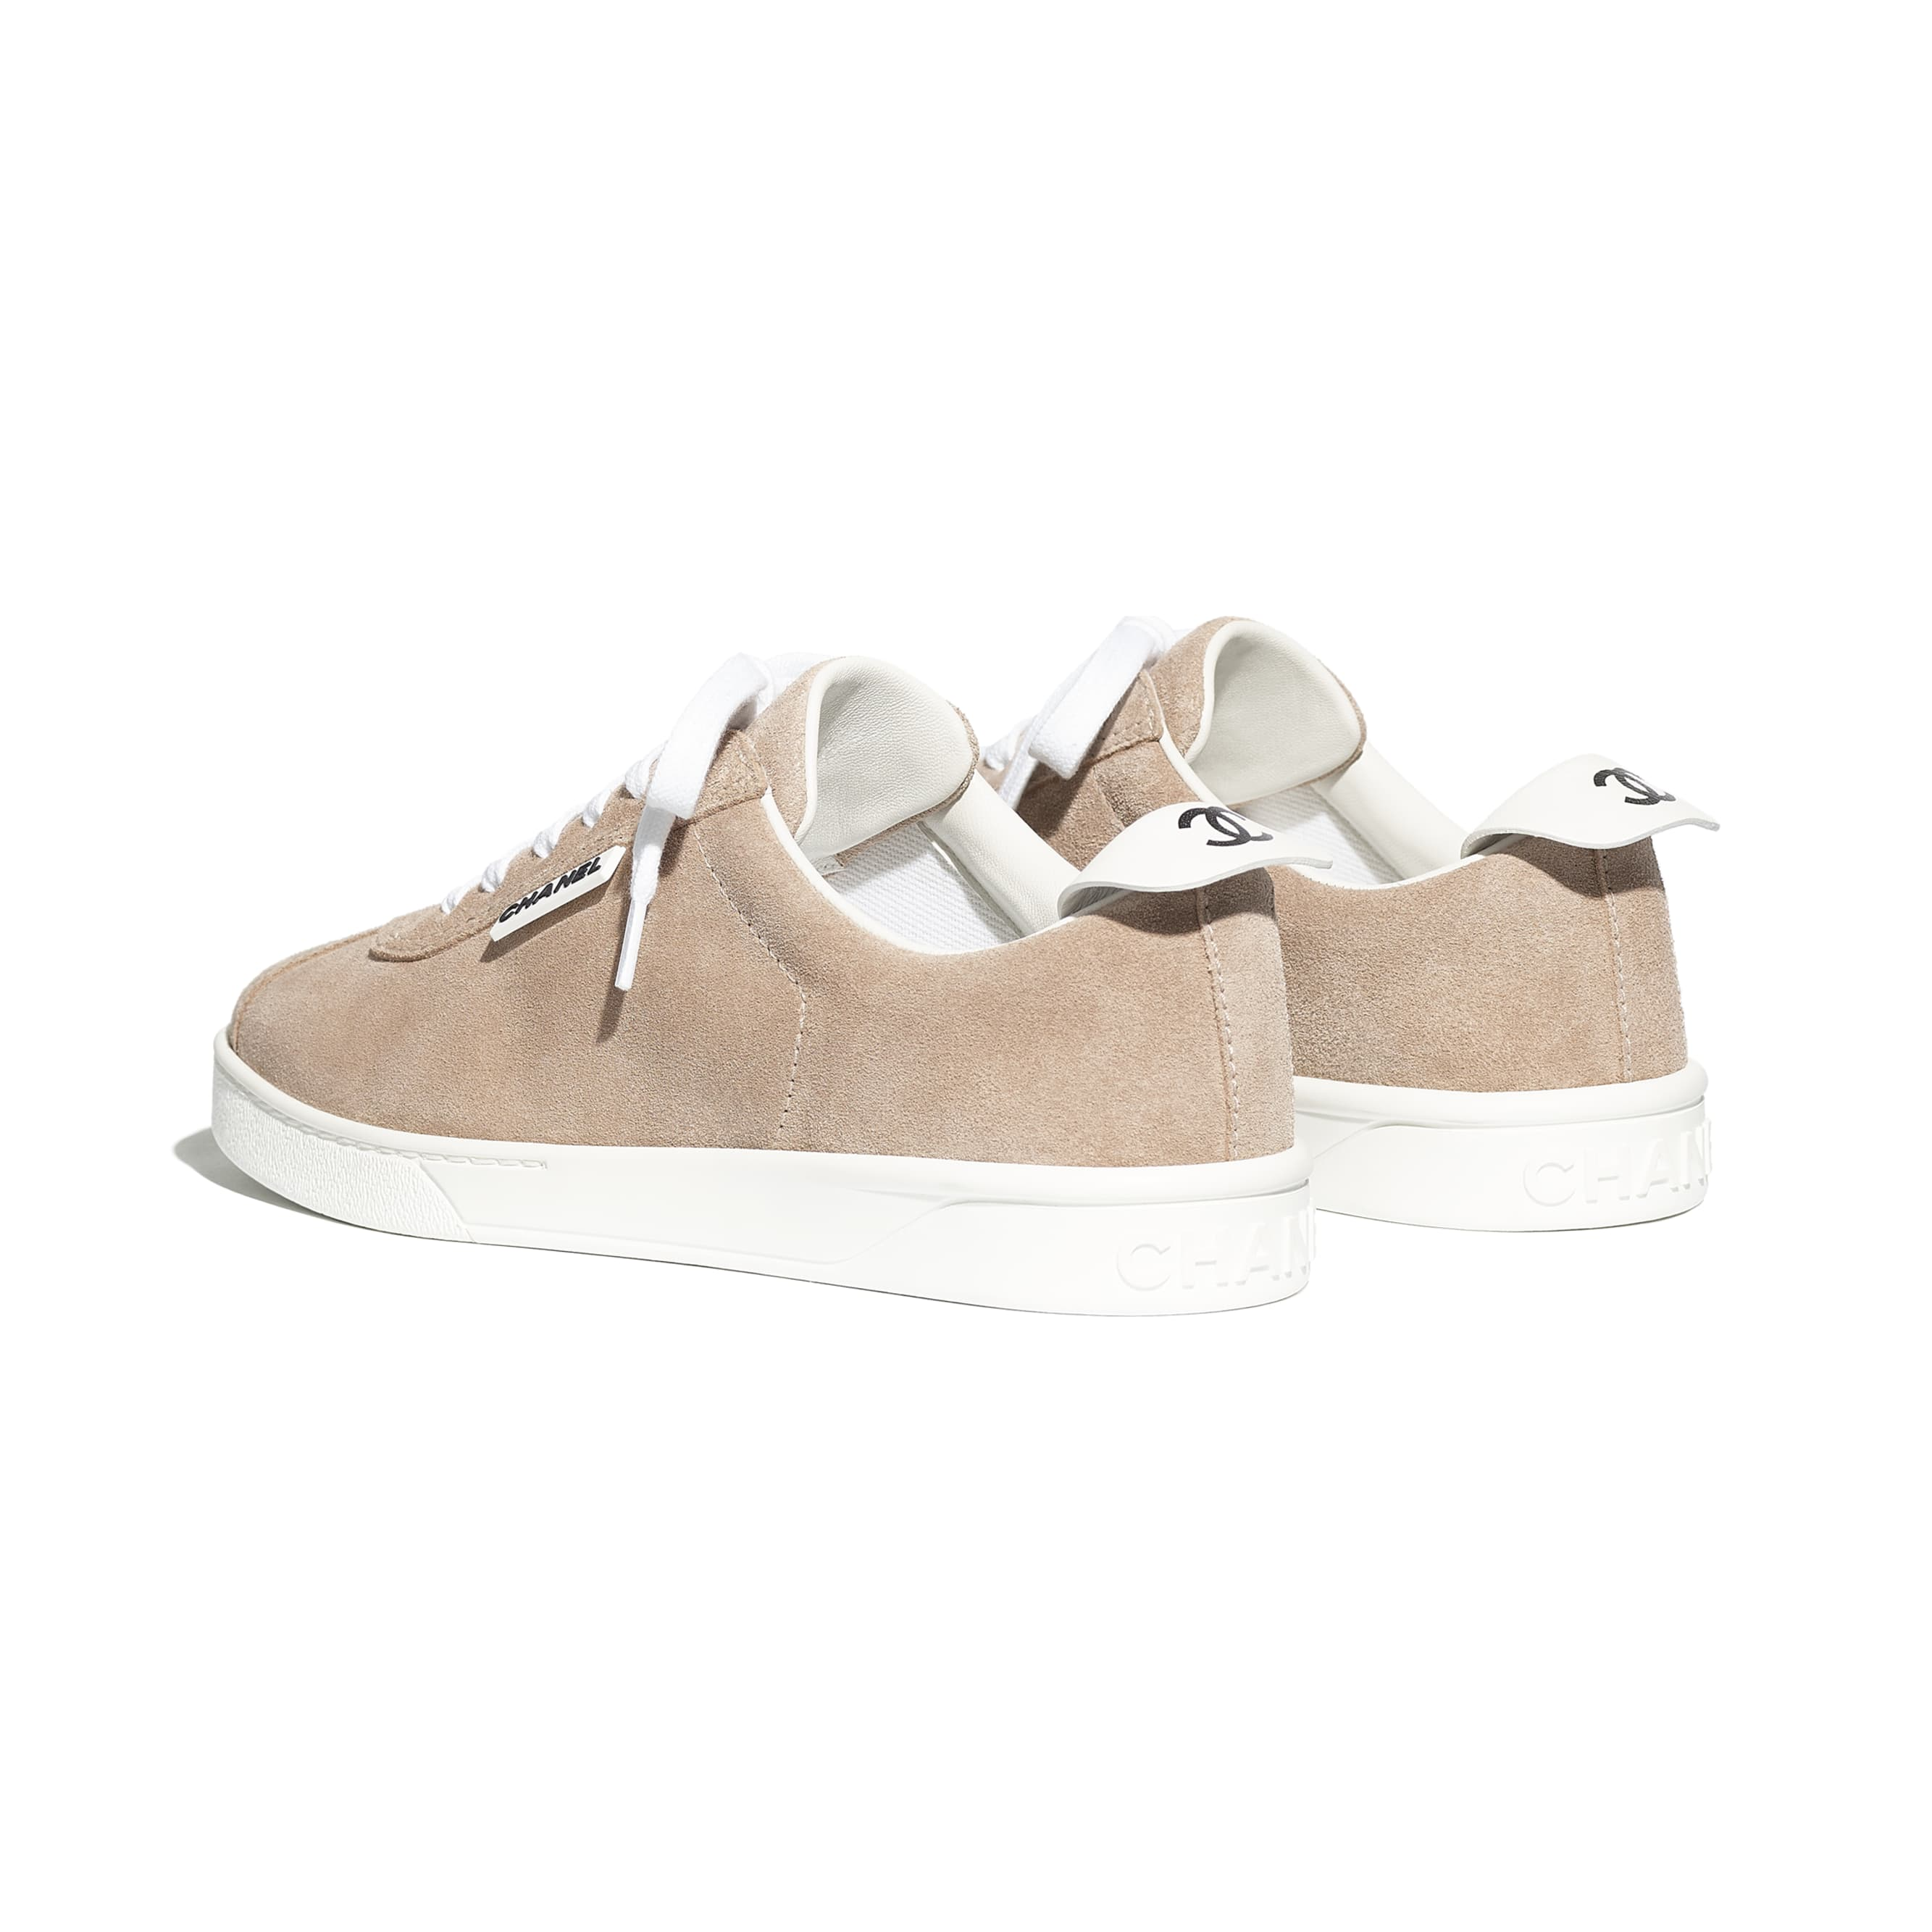 Trainers - Dark Beige - Suede Calfskin - CHANEL - Other view - see standard sized version